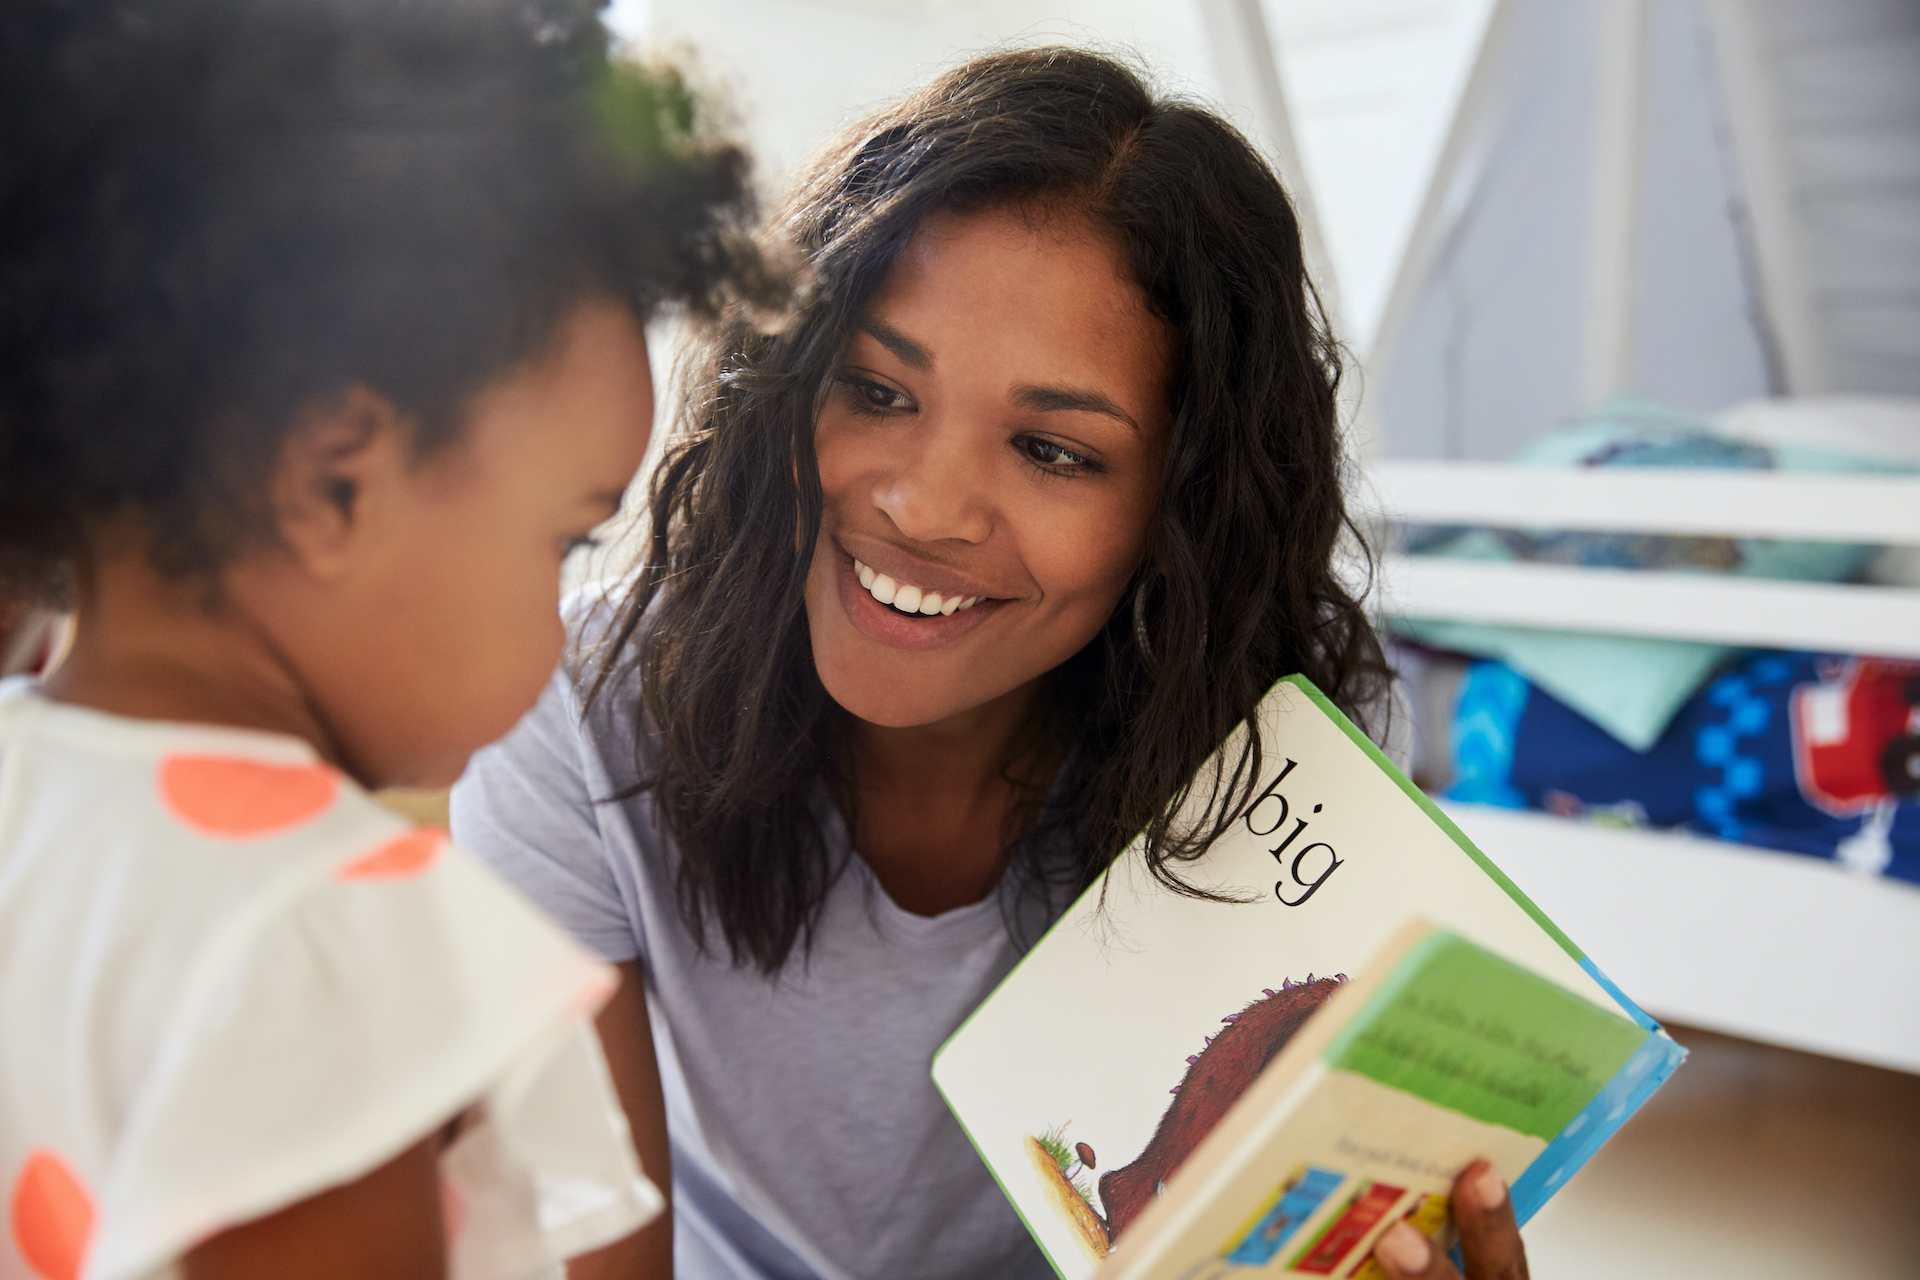 Black mom reads to daughter pointing out words and pictures in playroom